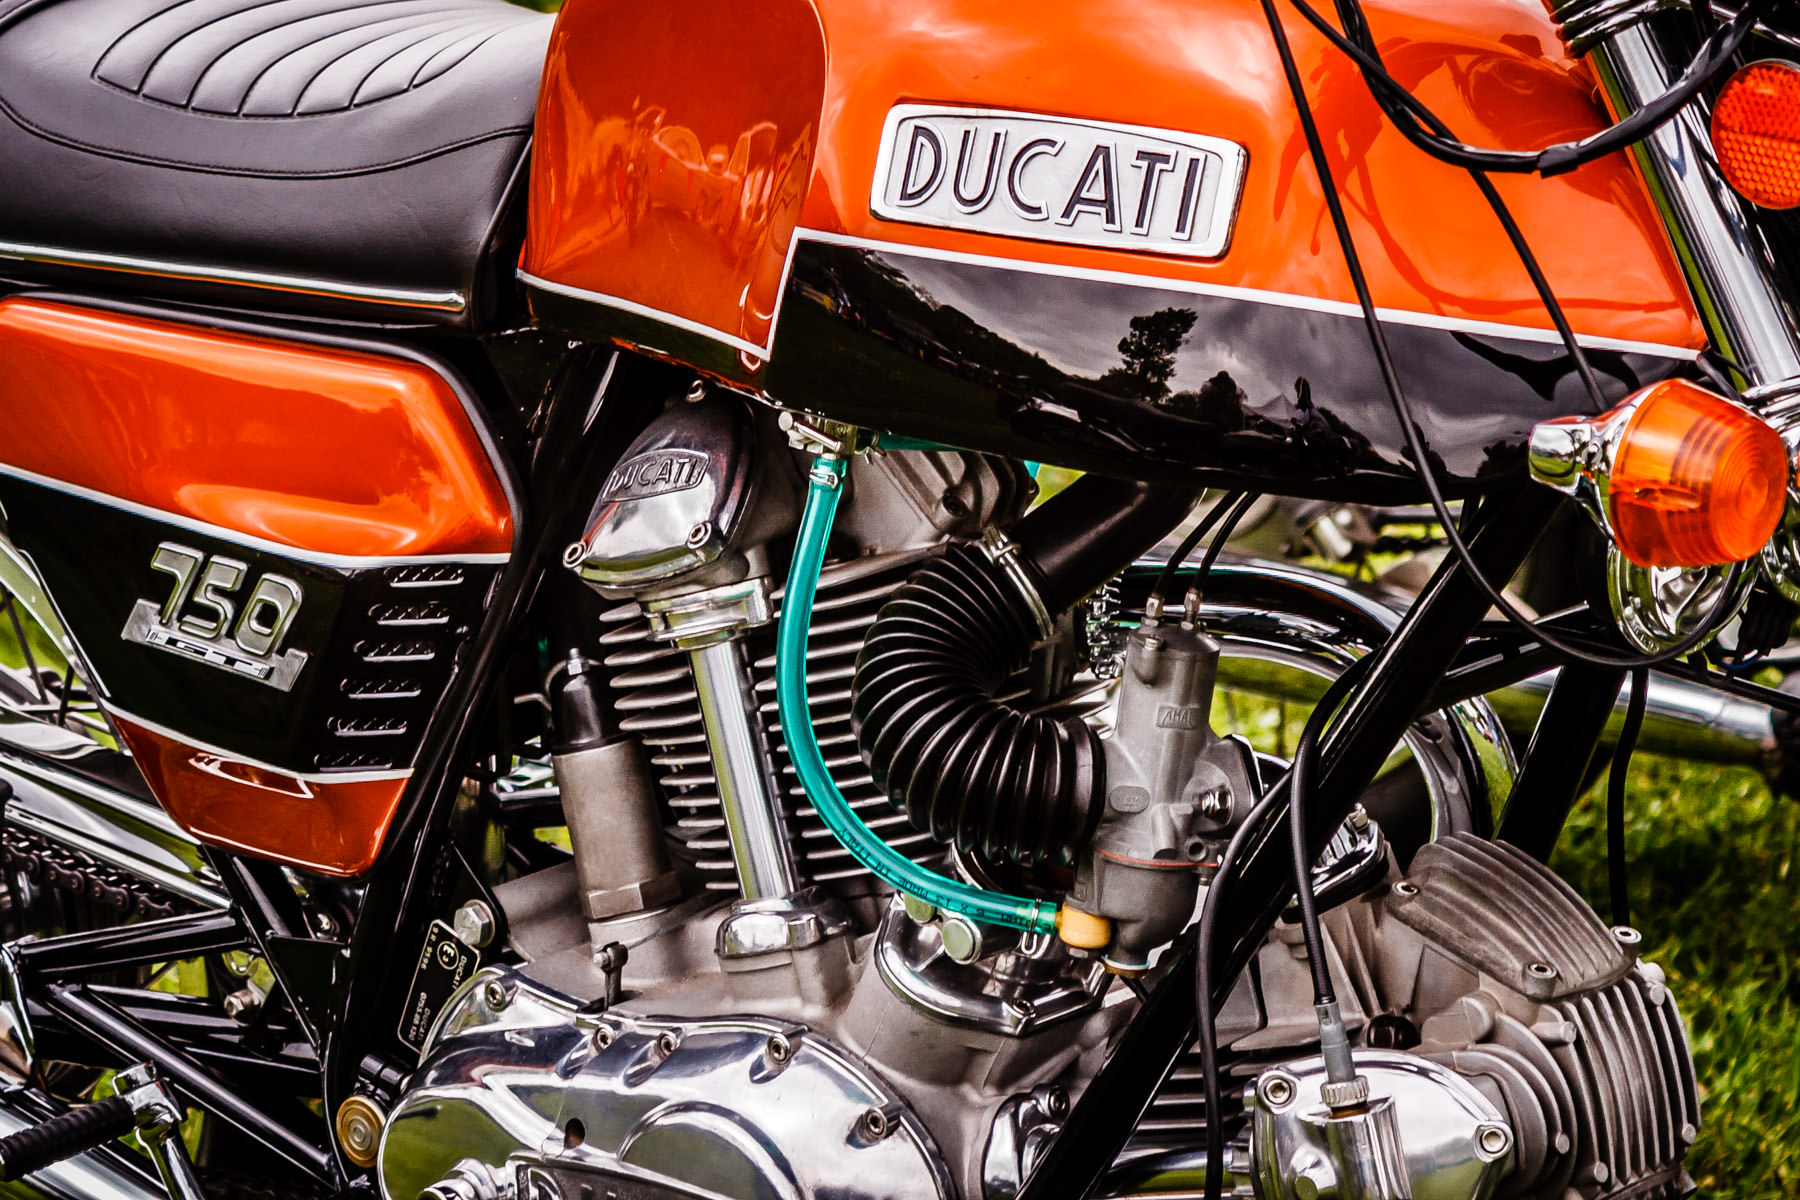 A classic Ducati motorcycle at Dallas' All British and European Car Day.